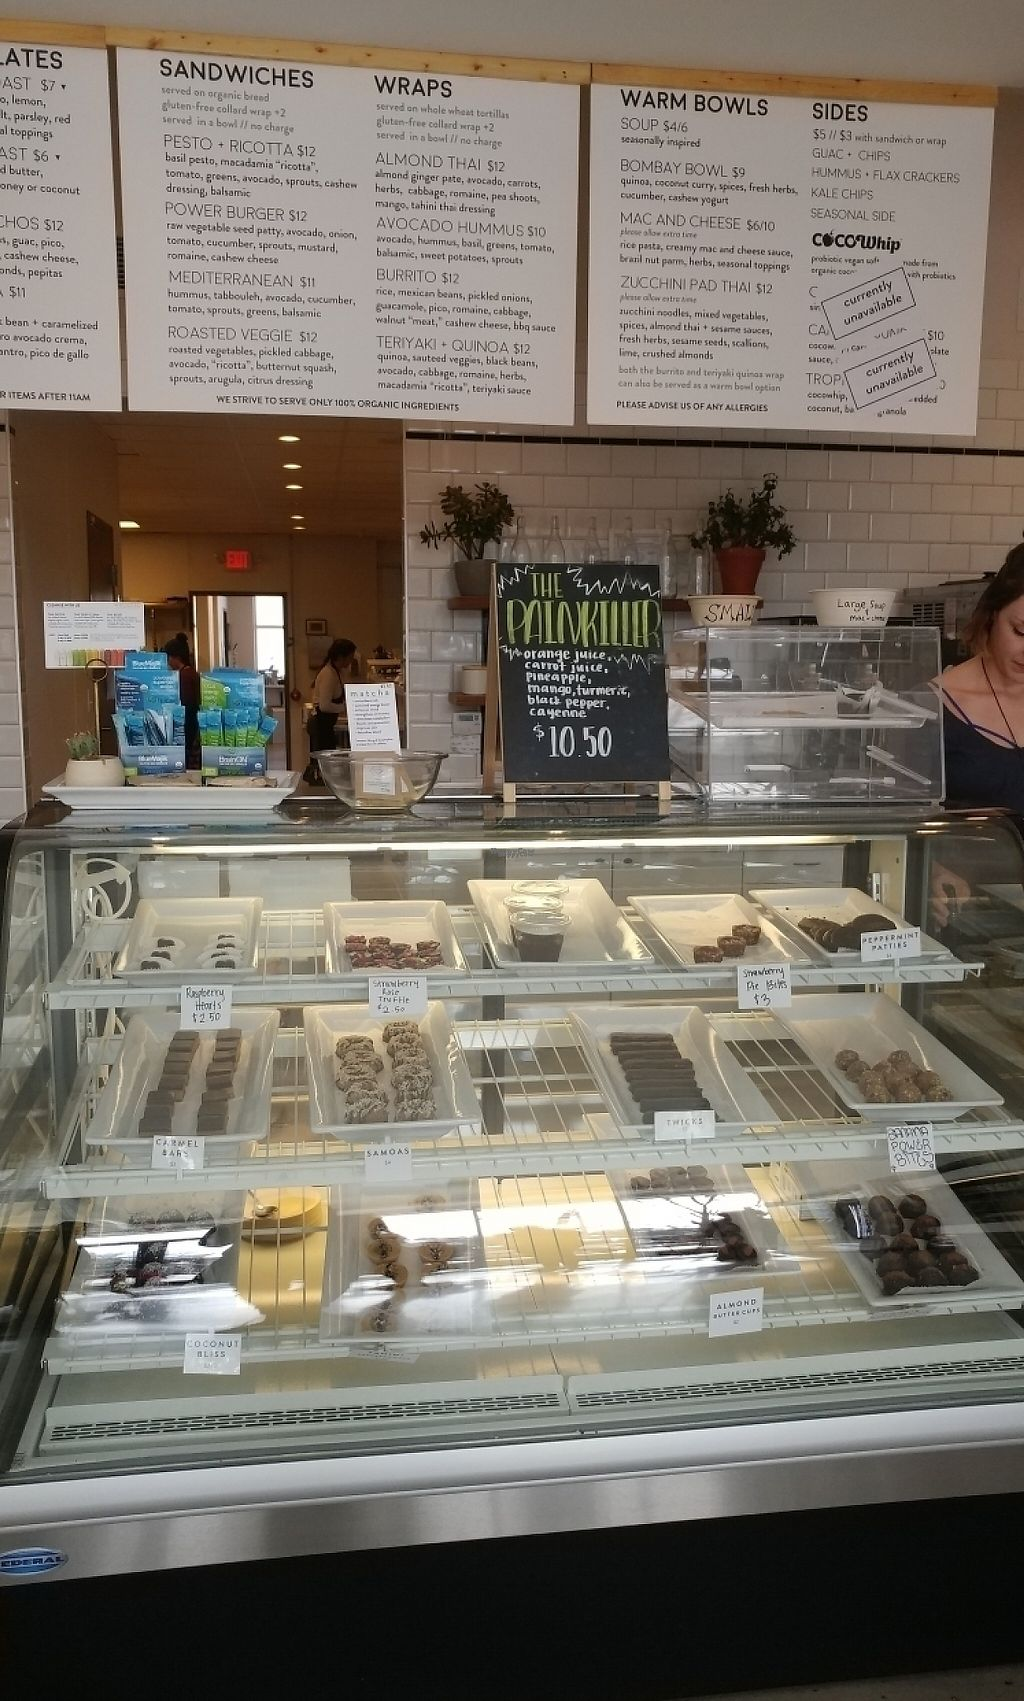 """Photo of Rooted Juicery and Kitchen  by <a href=""""/members/profile/KatBarry"""">KatBarry</a> <br/>Dessert Case/ Menu  <br/> March 15, 2017  - <a href='/contact/abuse/image/63466/236630'>Report</a>"""